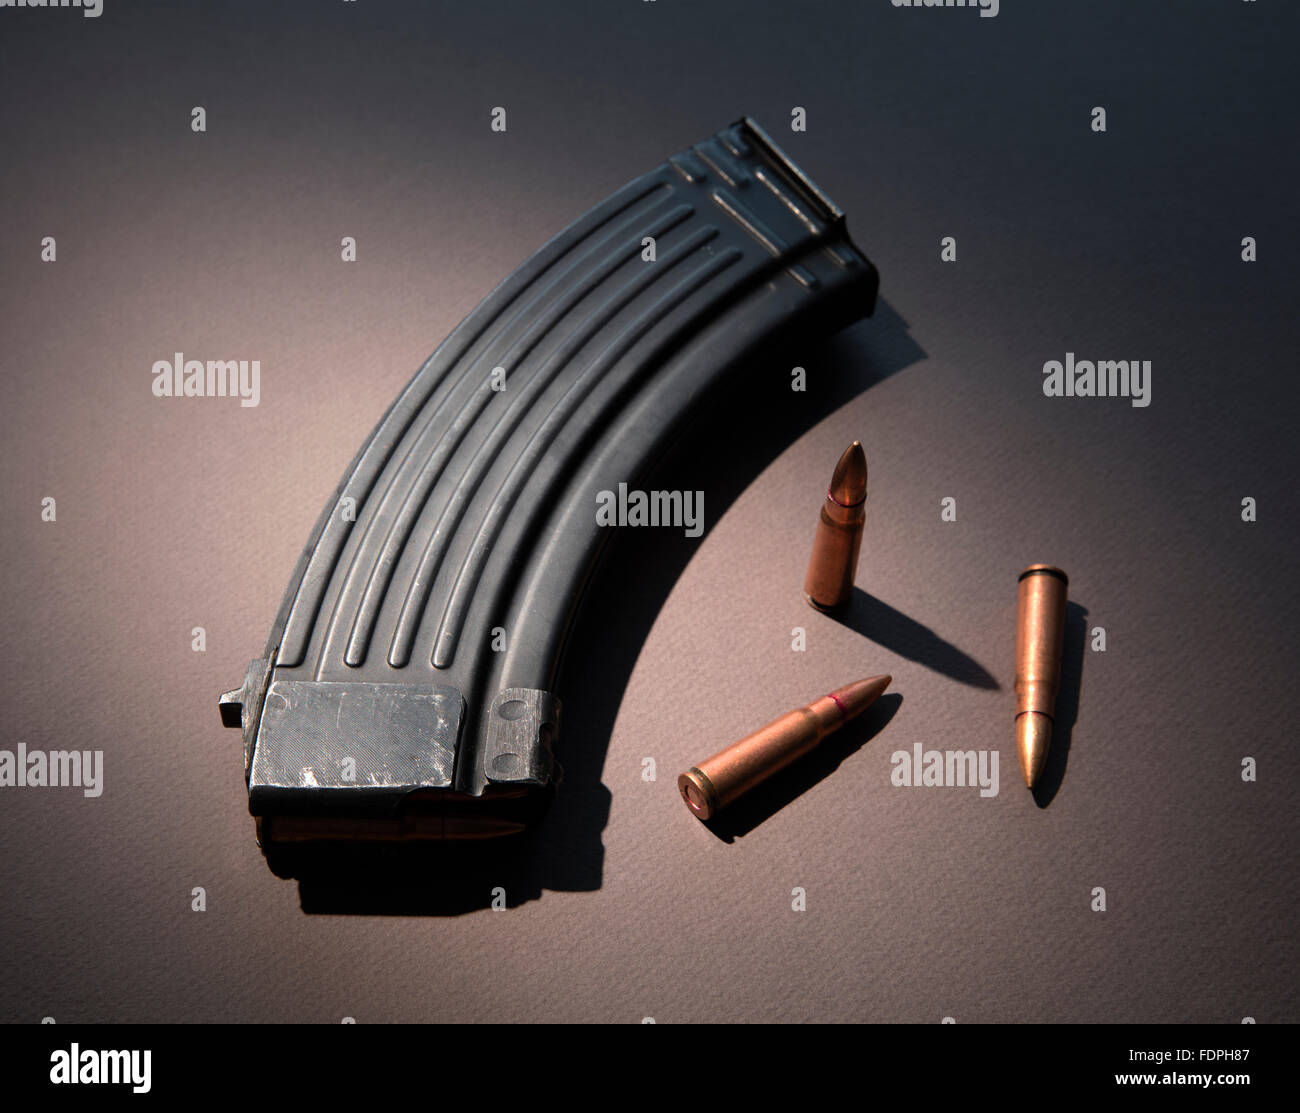 AK-47 high capacity assault rifle magazine with live ammunition of the type gun control advocates hope to ban - Stock Image